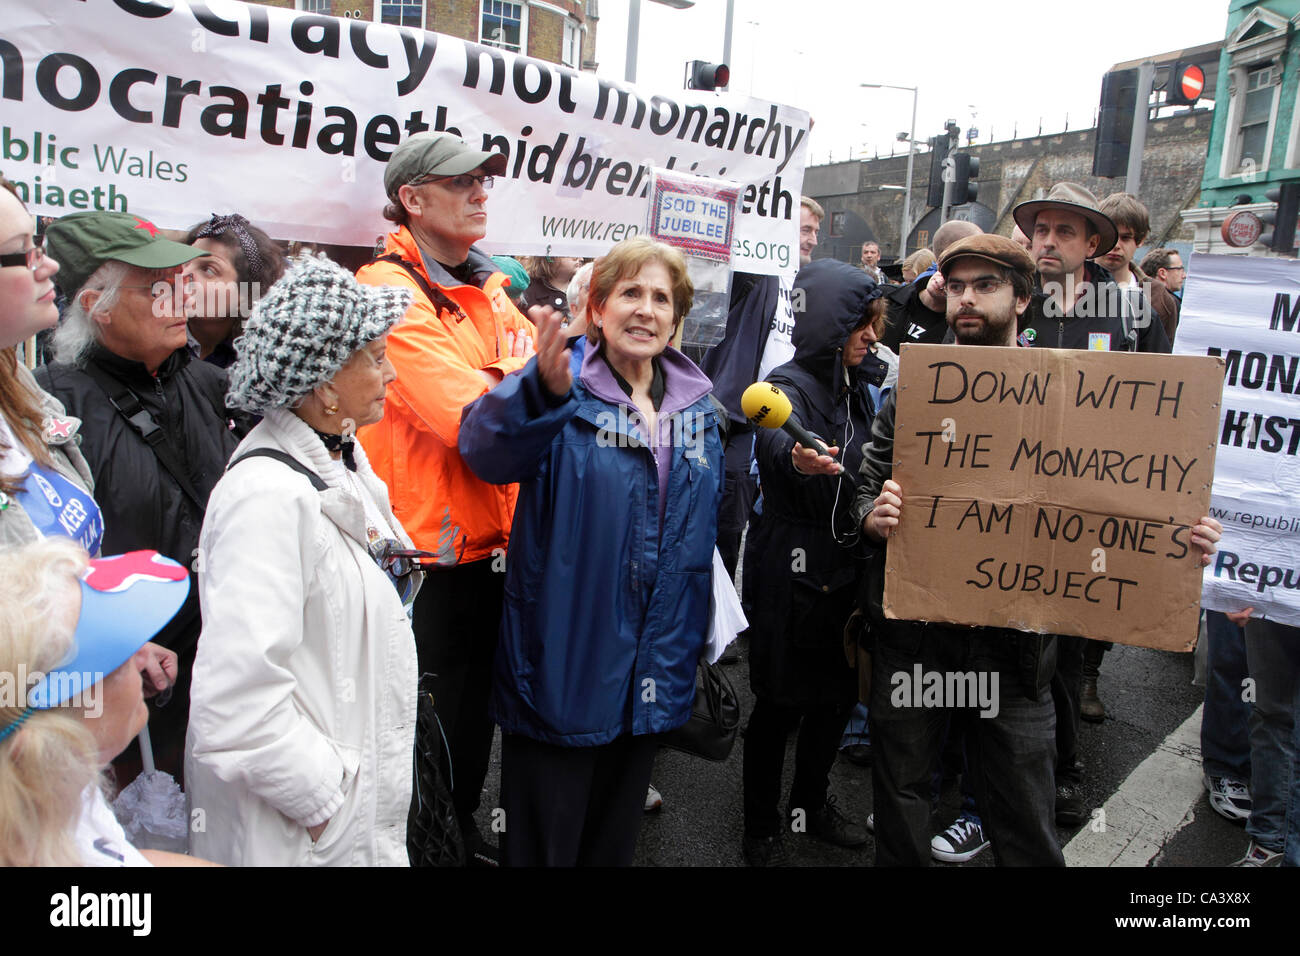 Anti-monarchy demonstrators protest during  Diamond Jubilee celebrations. London, UK 03 June 2012. - Stock Image